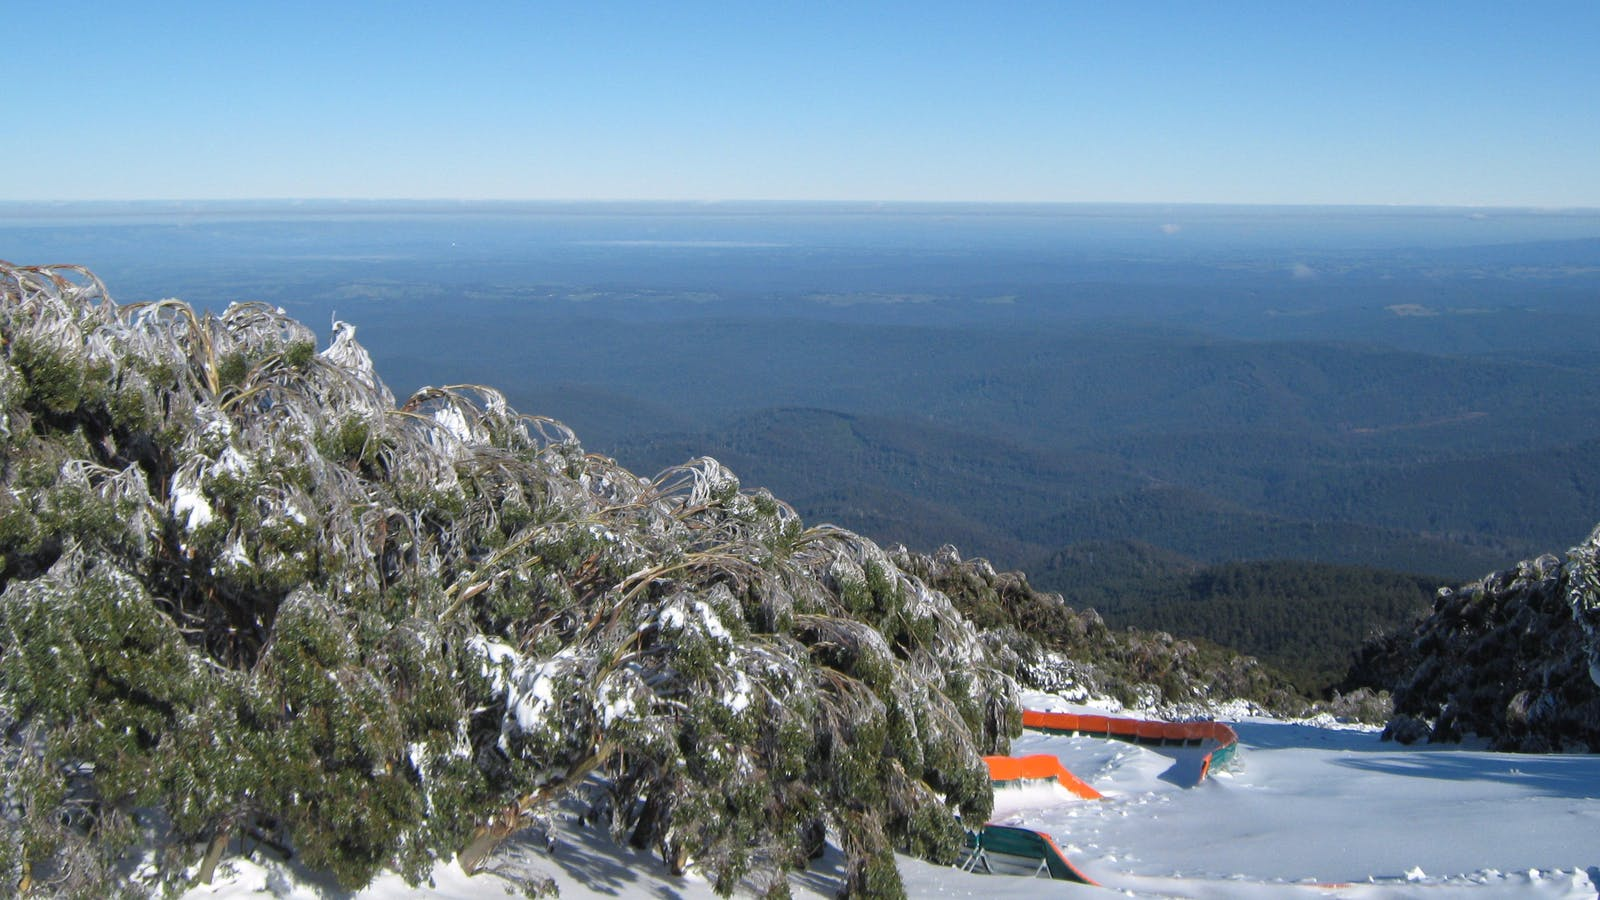 Bluebird day at Mt Baw Baw